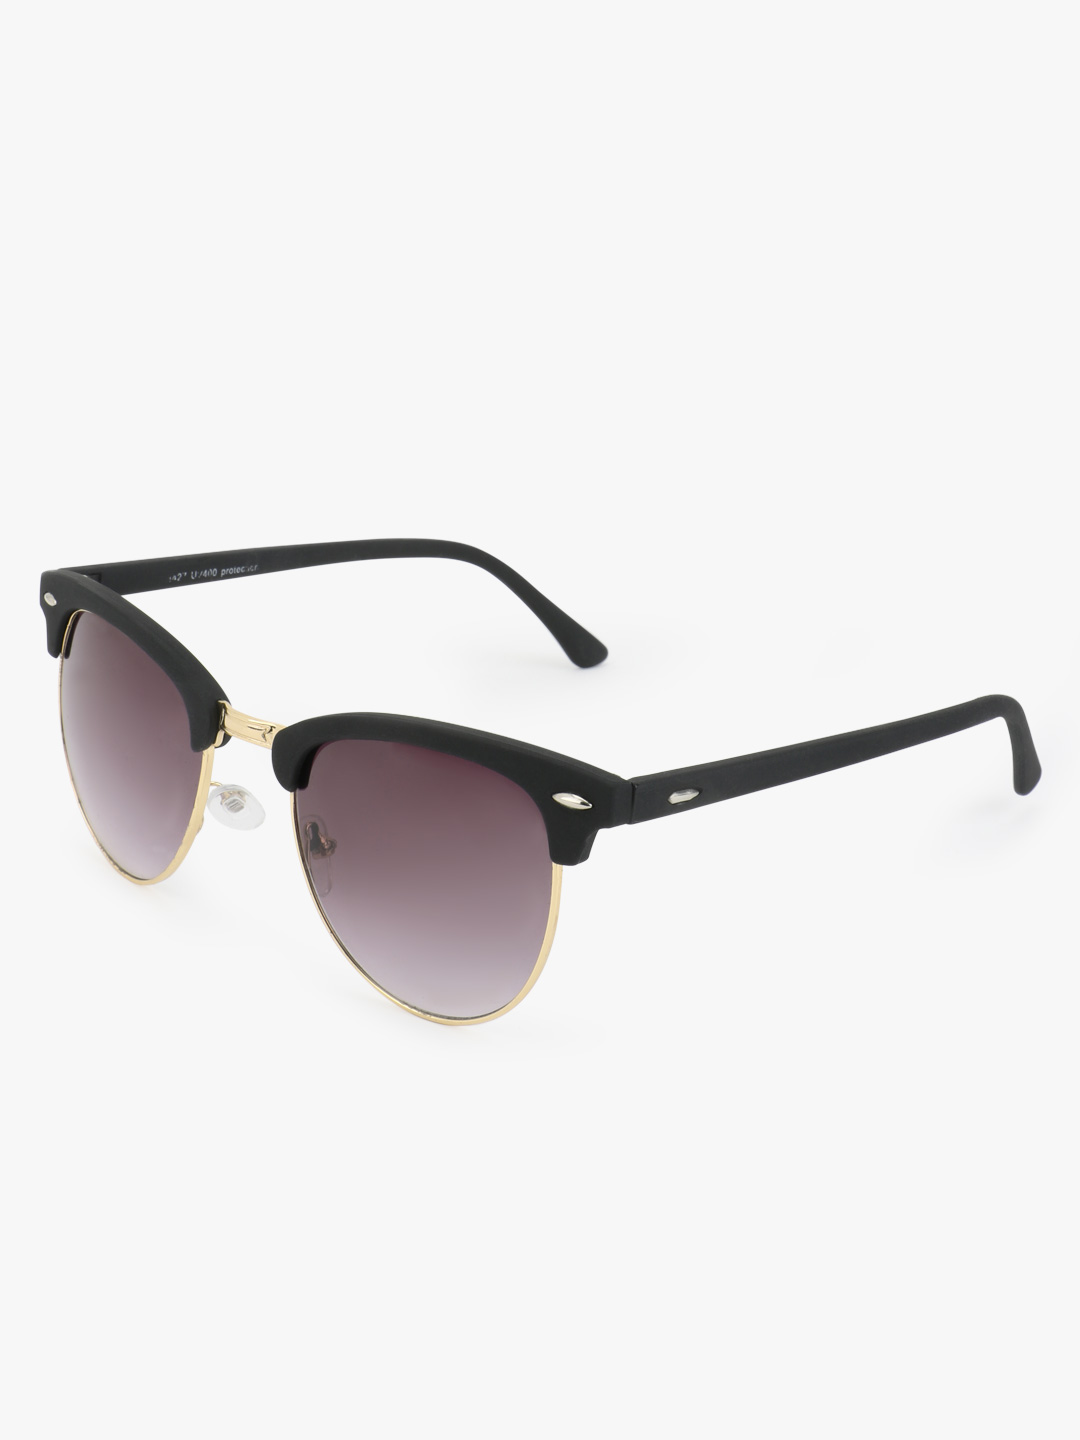 Kindred Black Tinted Lens Retro Sunglasses 1